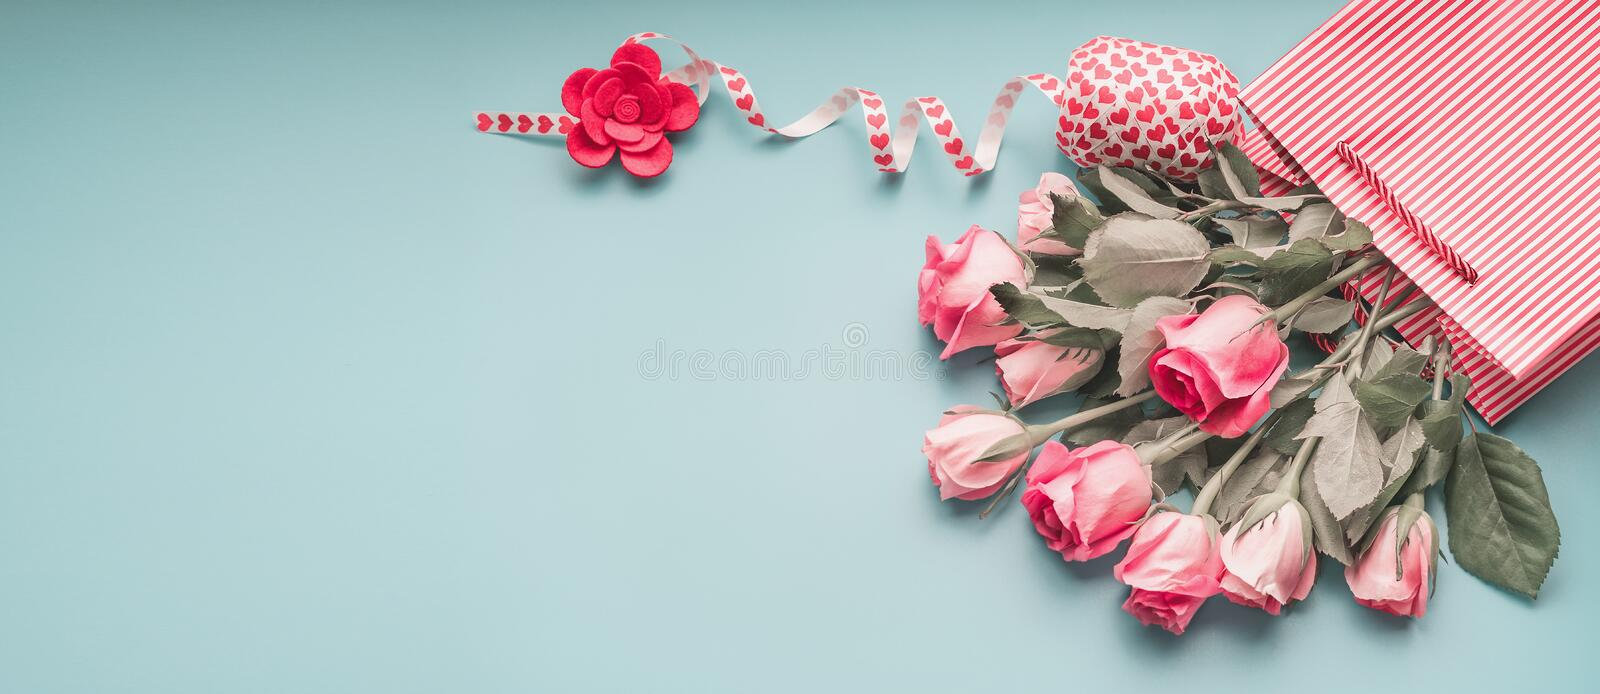 Greeting pink pale roses bunch in shopping bag with ribbon on turquoise blue background, top view. Copy space. Female holidays banner or template layout stock images